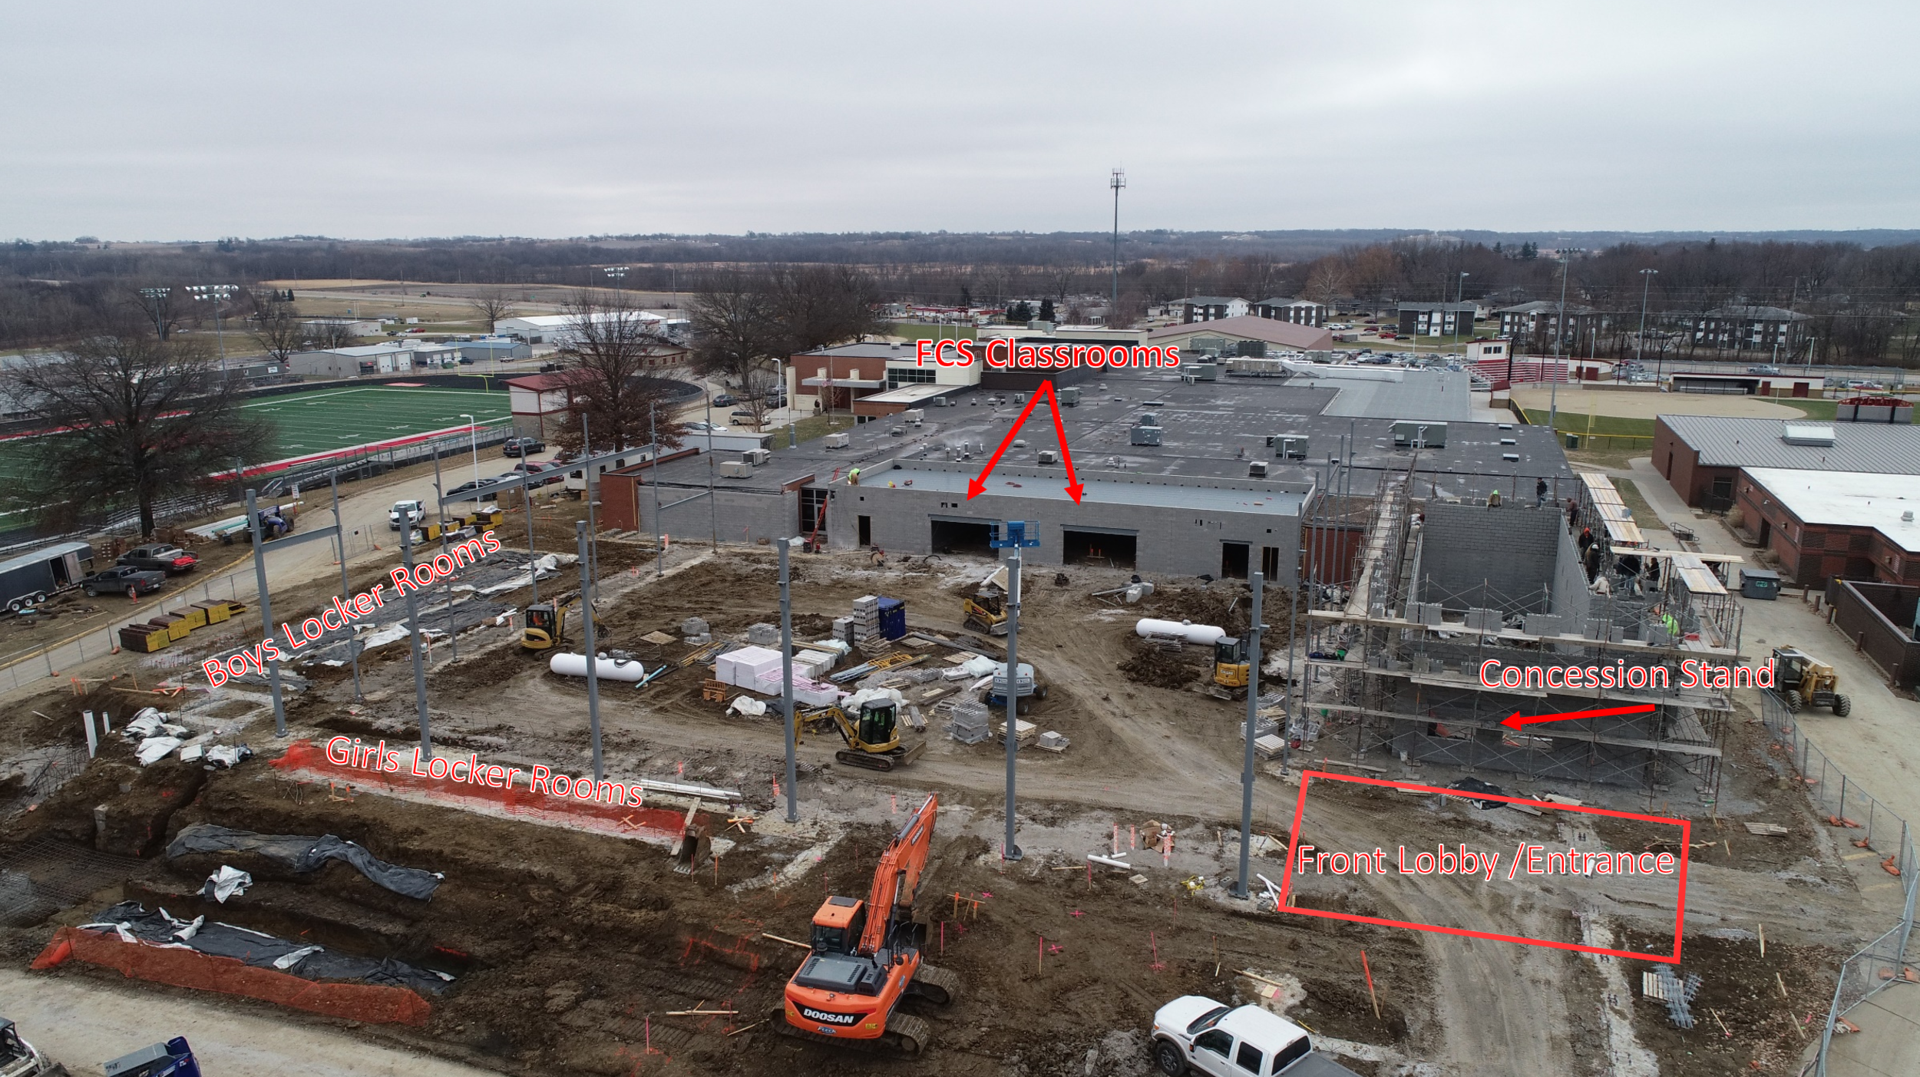 Drone Picture of IAC construction with labels